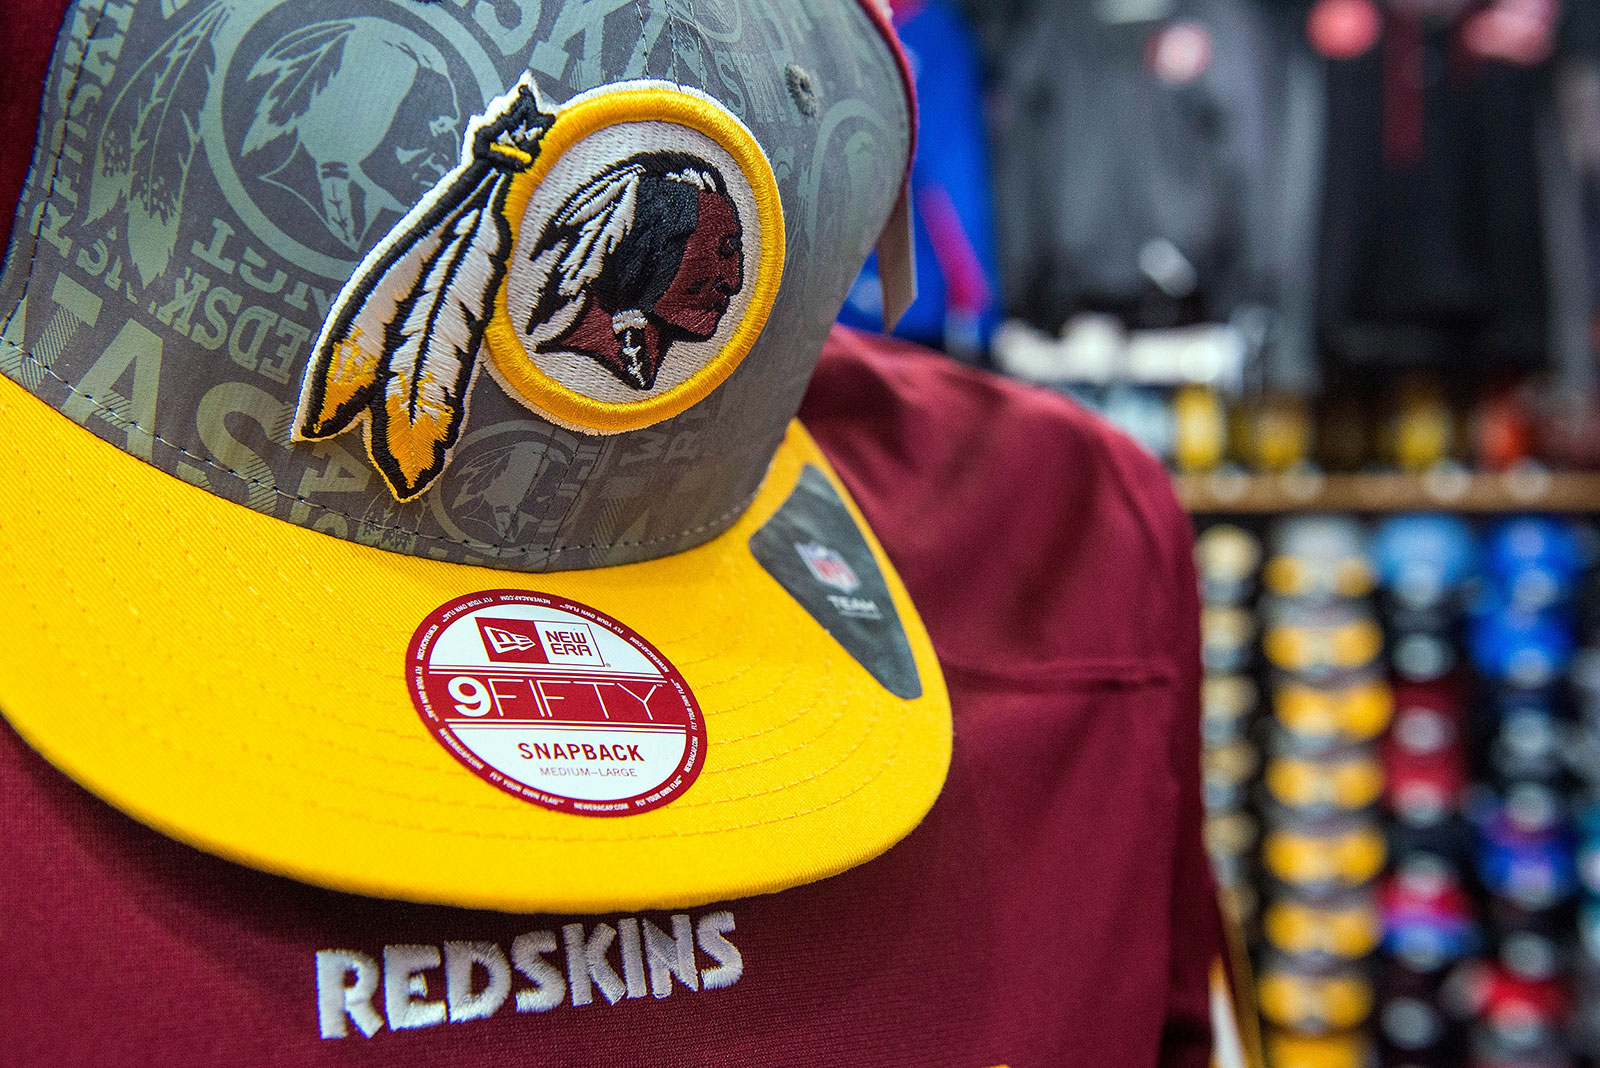 Amazon pulls Washington Redskins merchandise from site as calls to change team name escalate